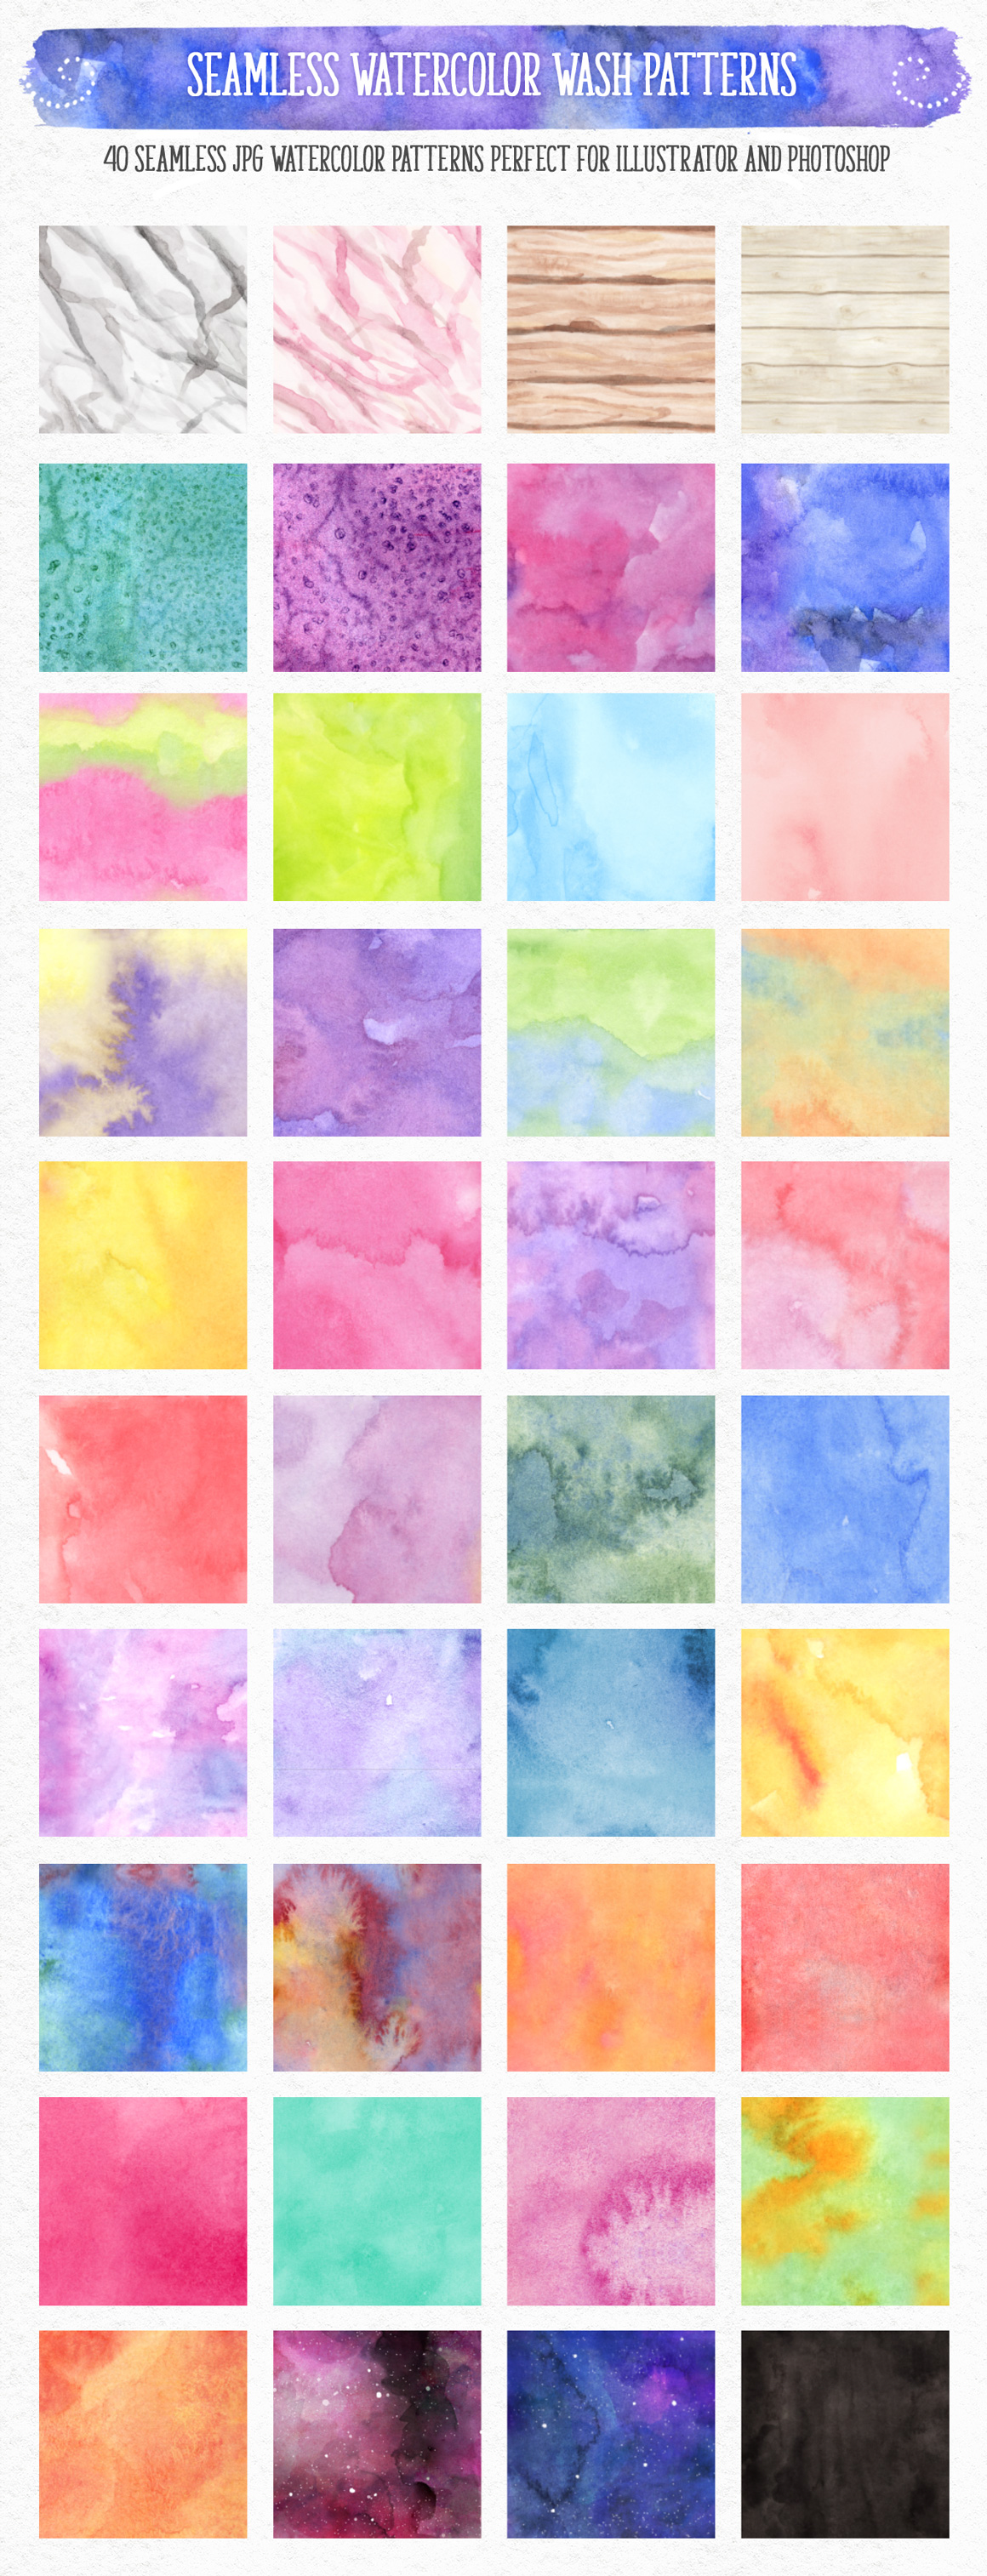 New Watercolor Textures and Graphics Bundle example image 11